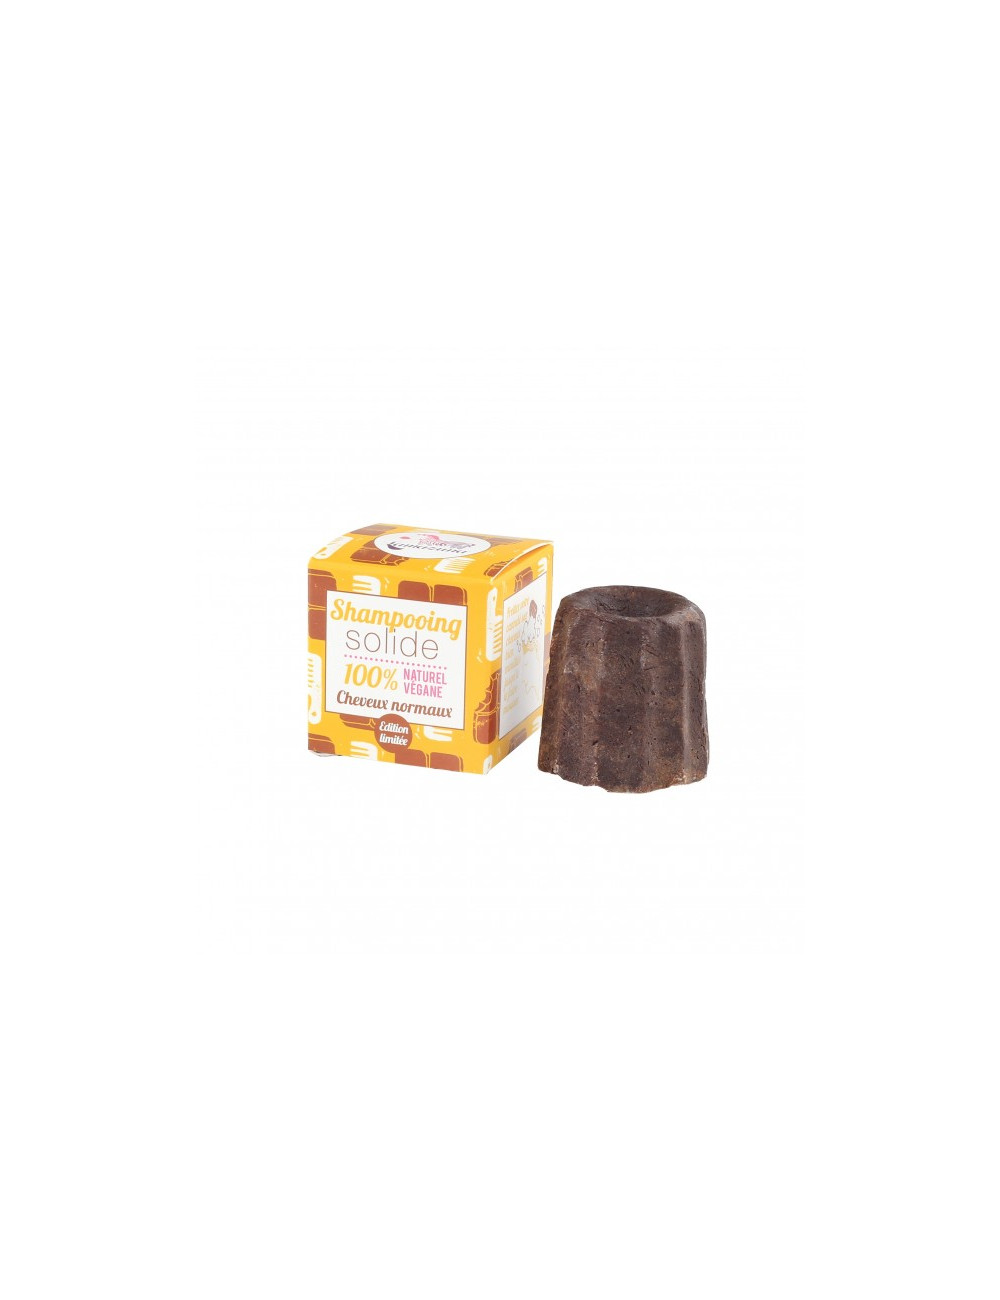 shampoing solide chocolat cheveux normaux